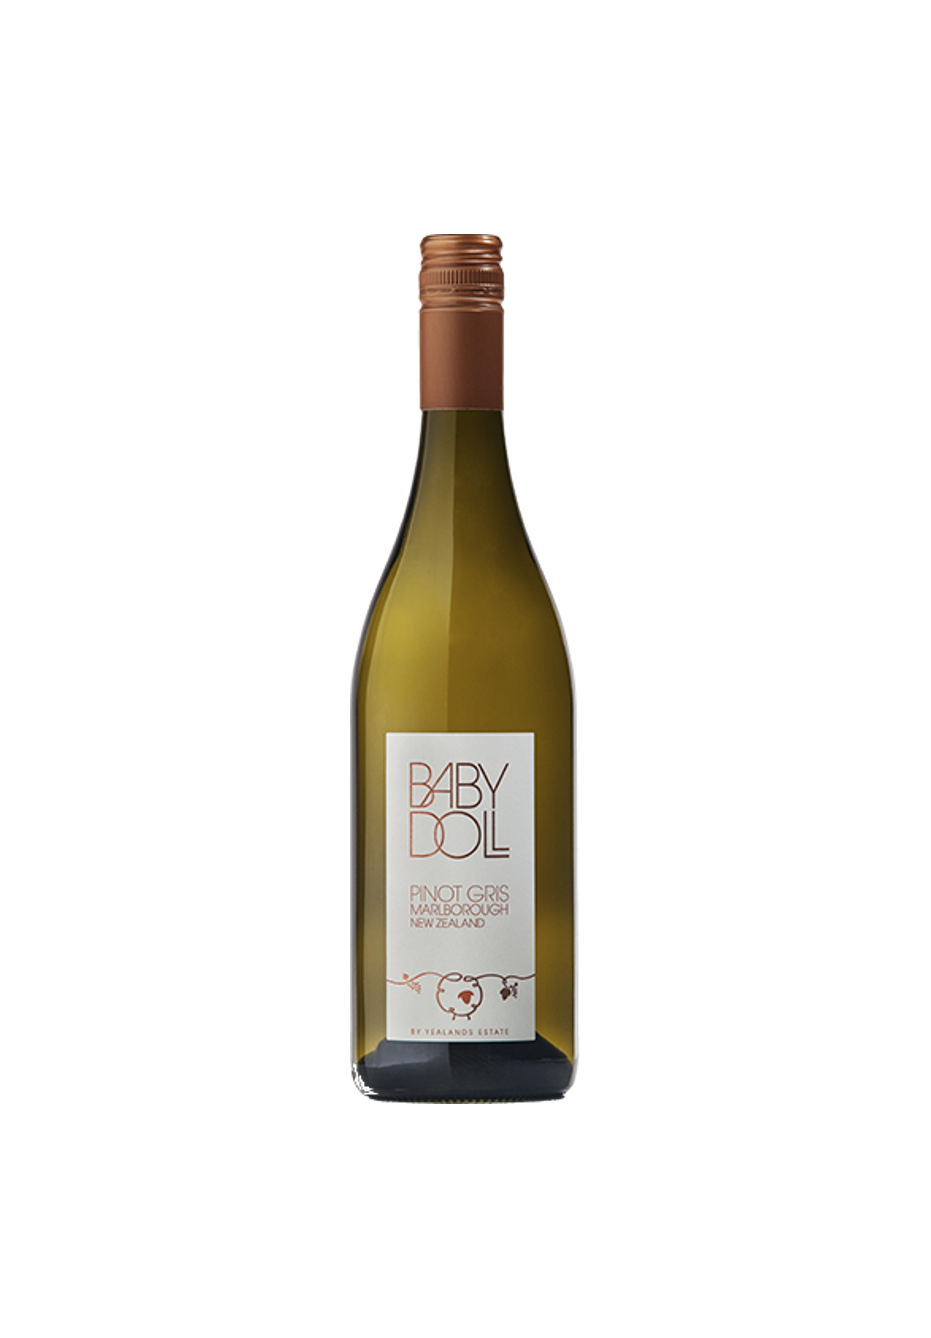 Baby Doll Marlborough Pinot Gris 2016